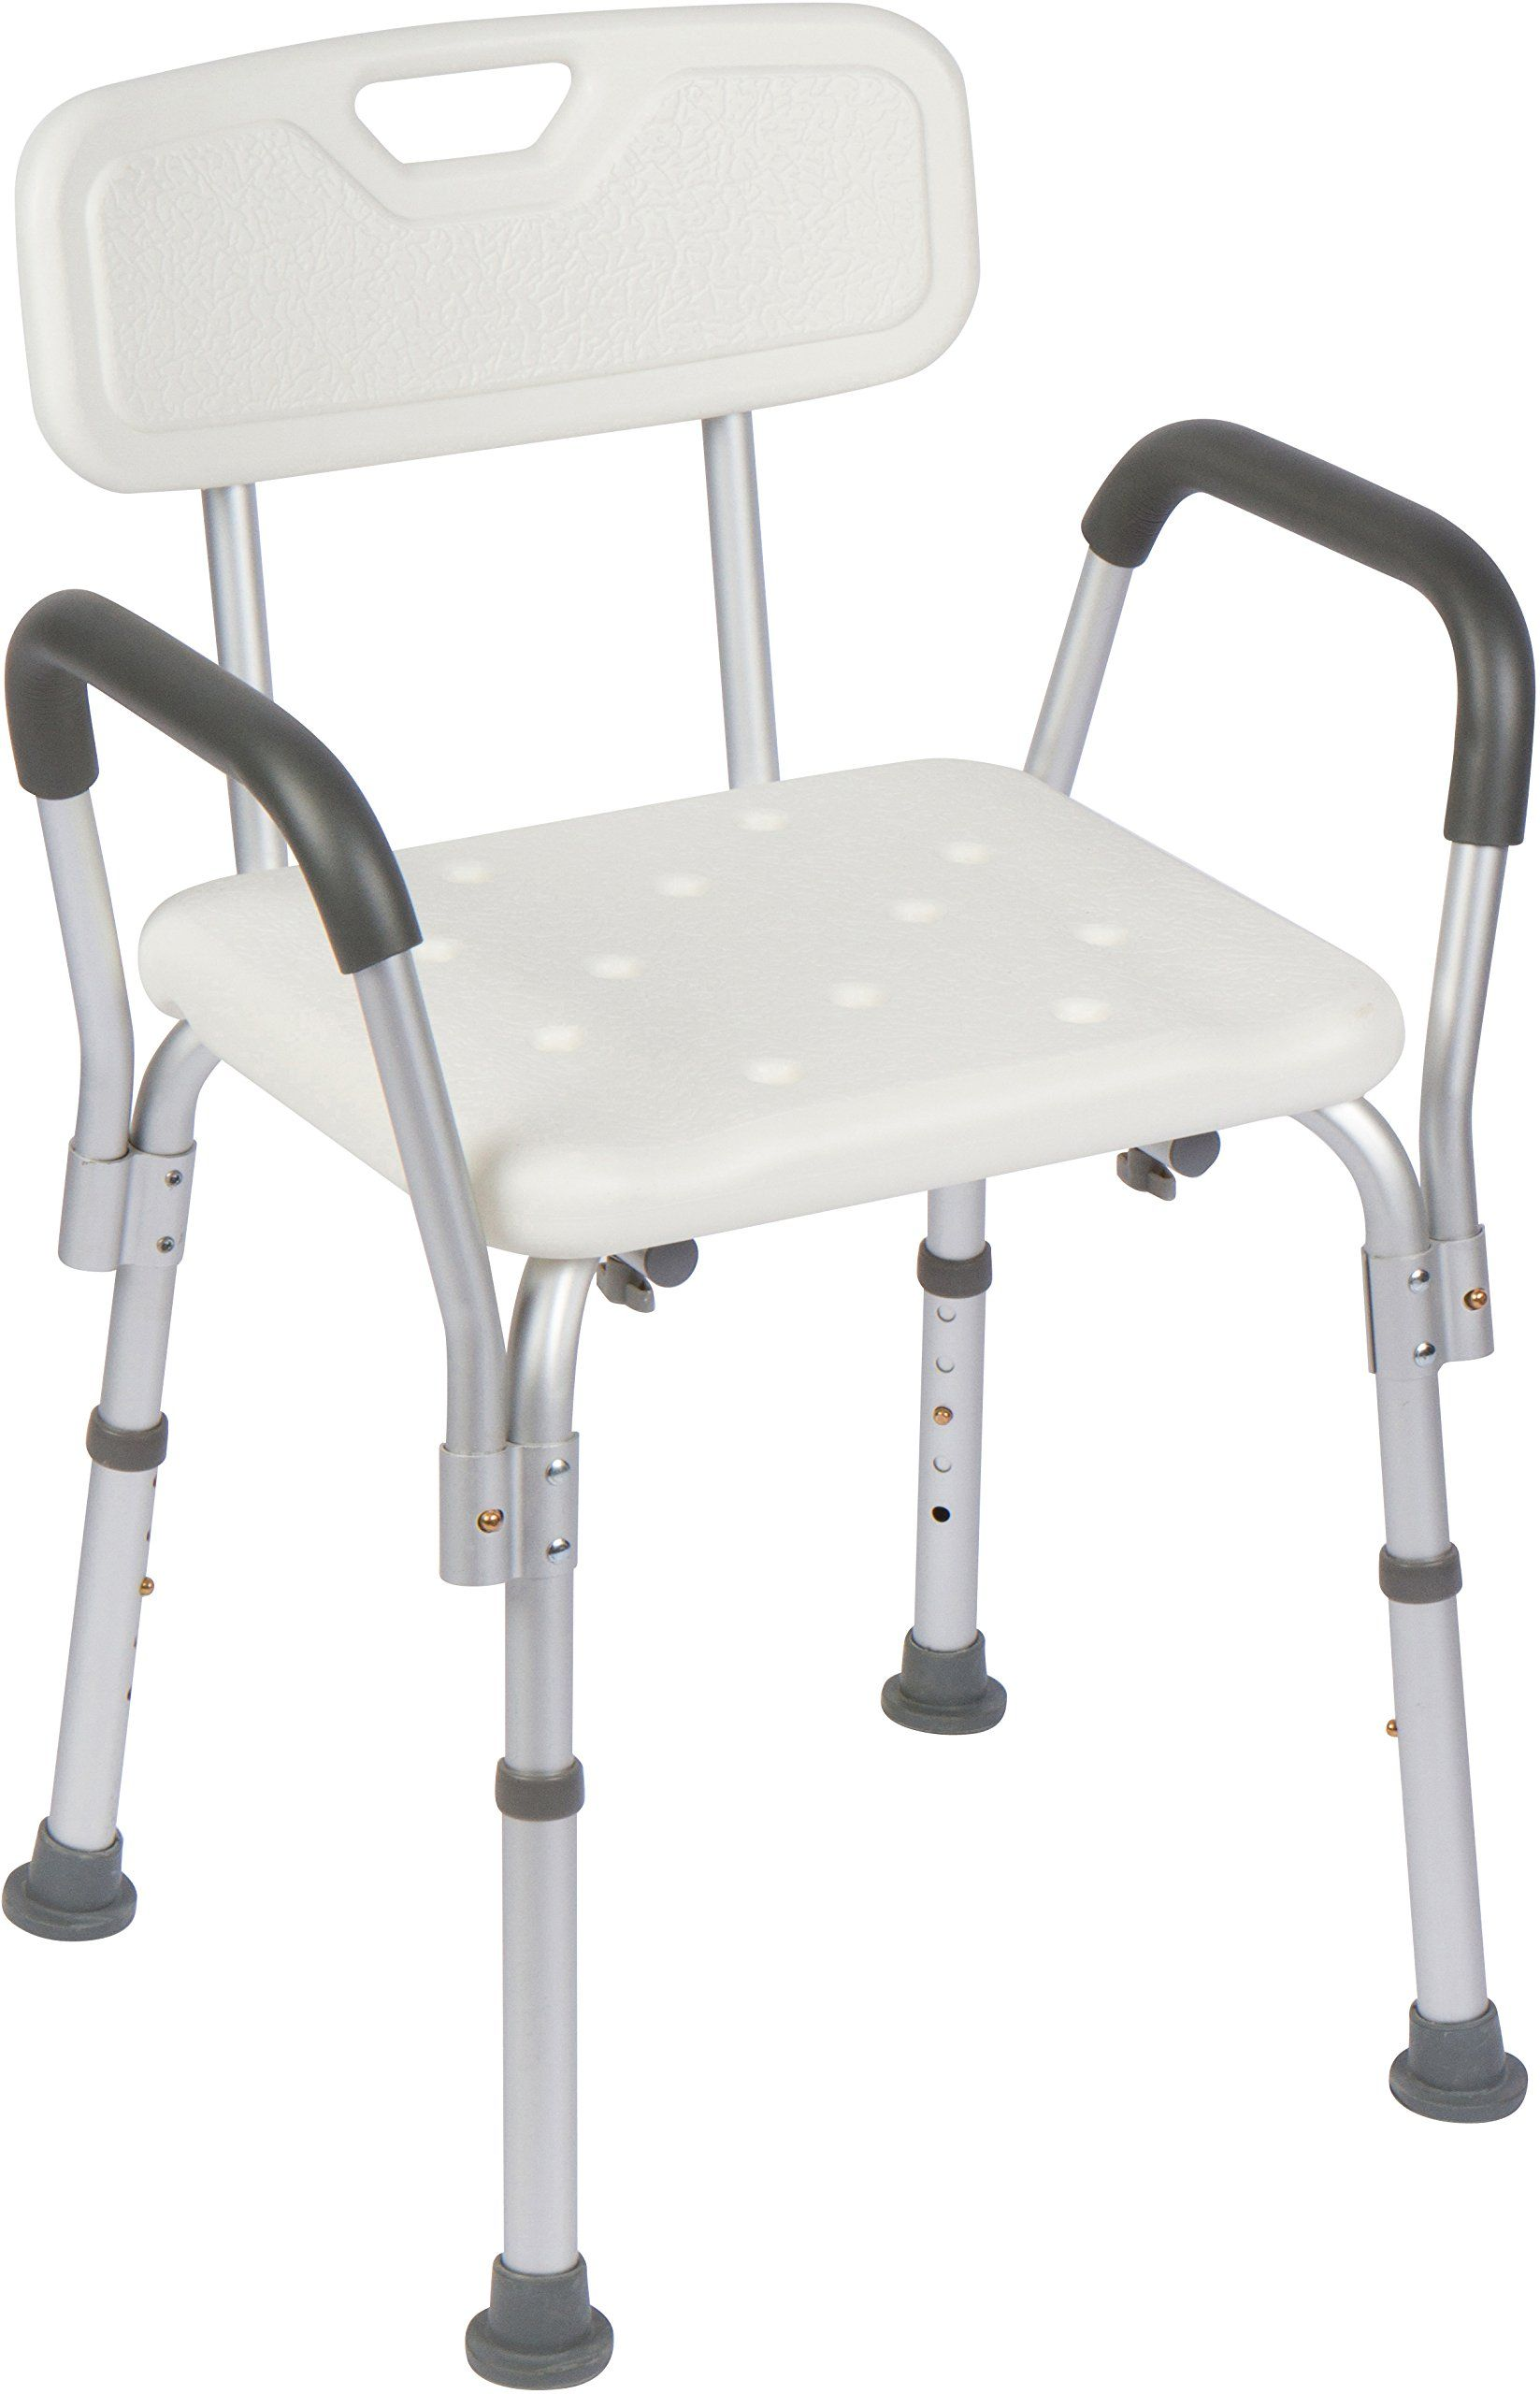 Casiva Premium Shower Chair with Arms - Strong, Secure Bathtub Chair ...